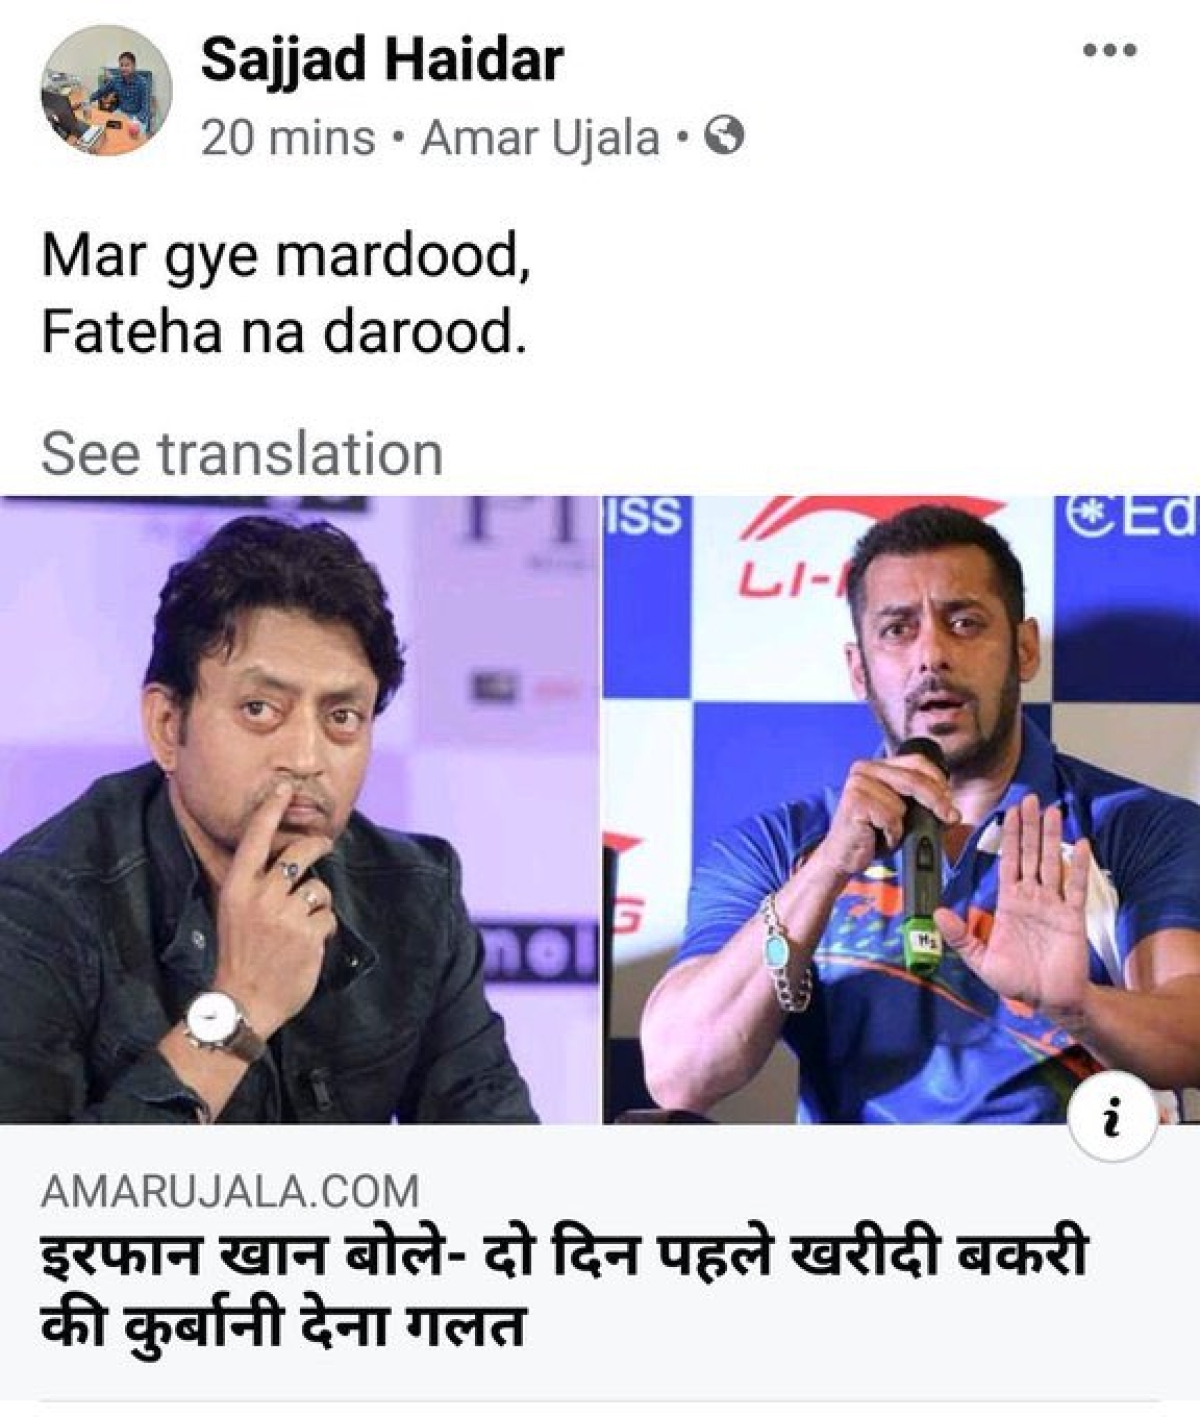 Irrfan Khan's death shows Twitter's ugly side some call him a terrorist, others say 'take Akshay Kumar and Kartik Aryan instead'